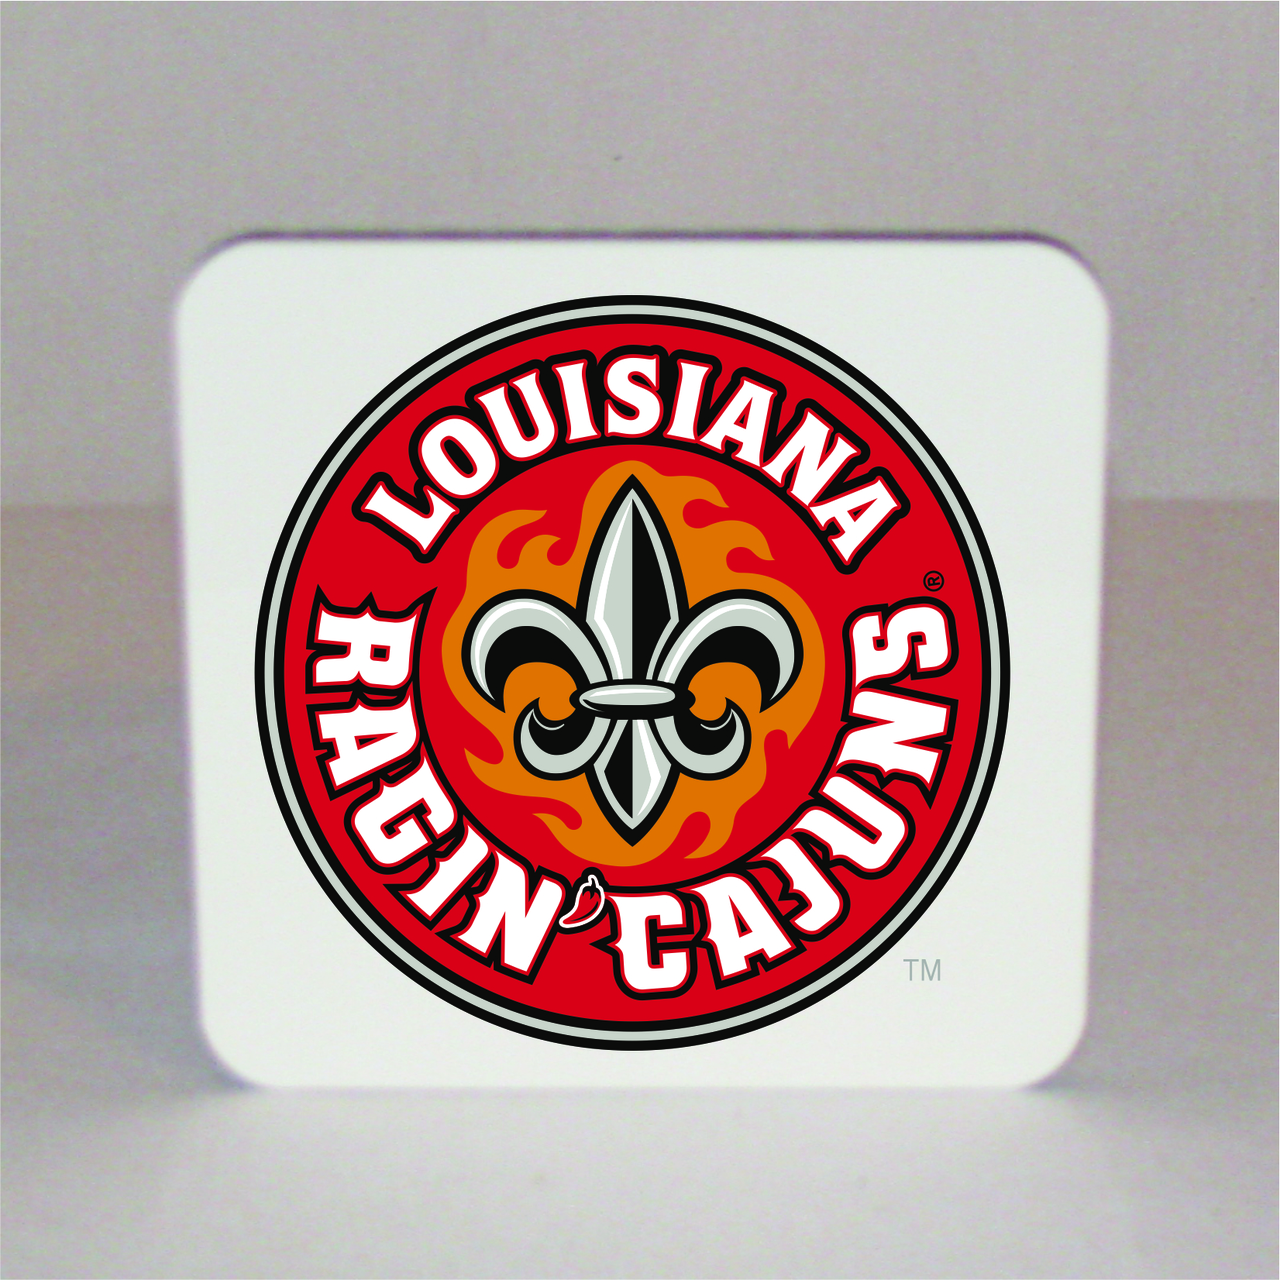 Louisiana Ragin' Cajuns Square Coaster